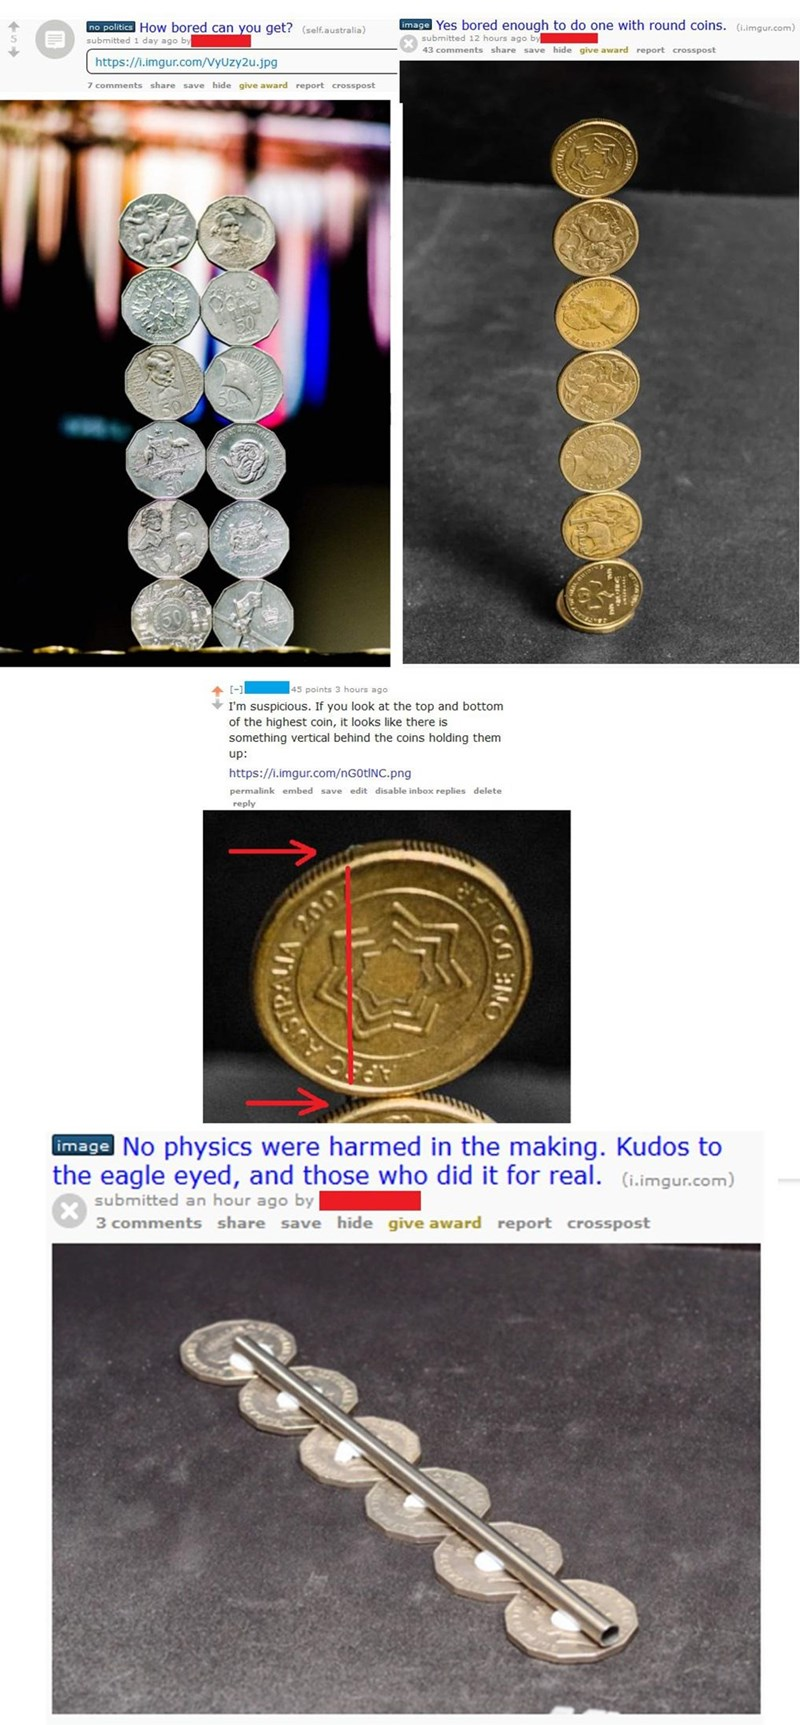 Coin - image Yes bored enough to do one with round coins. (.imgur.com) no politics How bored can you get? (self.australia) submitted 1 day ago by submitted 12 hours ago by 43 comments share save hide give award report crosspost https://i.imgur.com/VyUzy2u.jpg 7 comments share save hide give award report crosspost CAL CHT -1 I'm suspicious. If you look at the top and bottom of the highest coin, it looks like there is something vertical behind the coins holding them 45 points 3 hours ago up: https